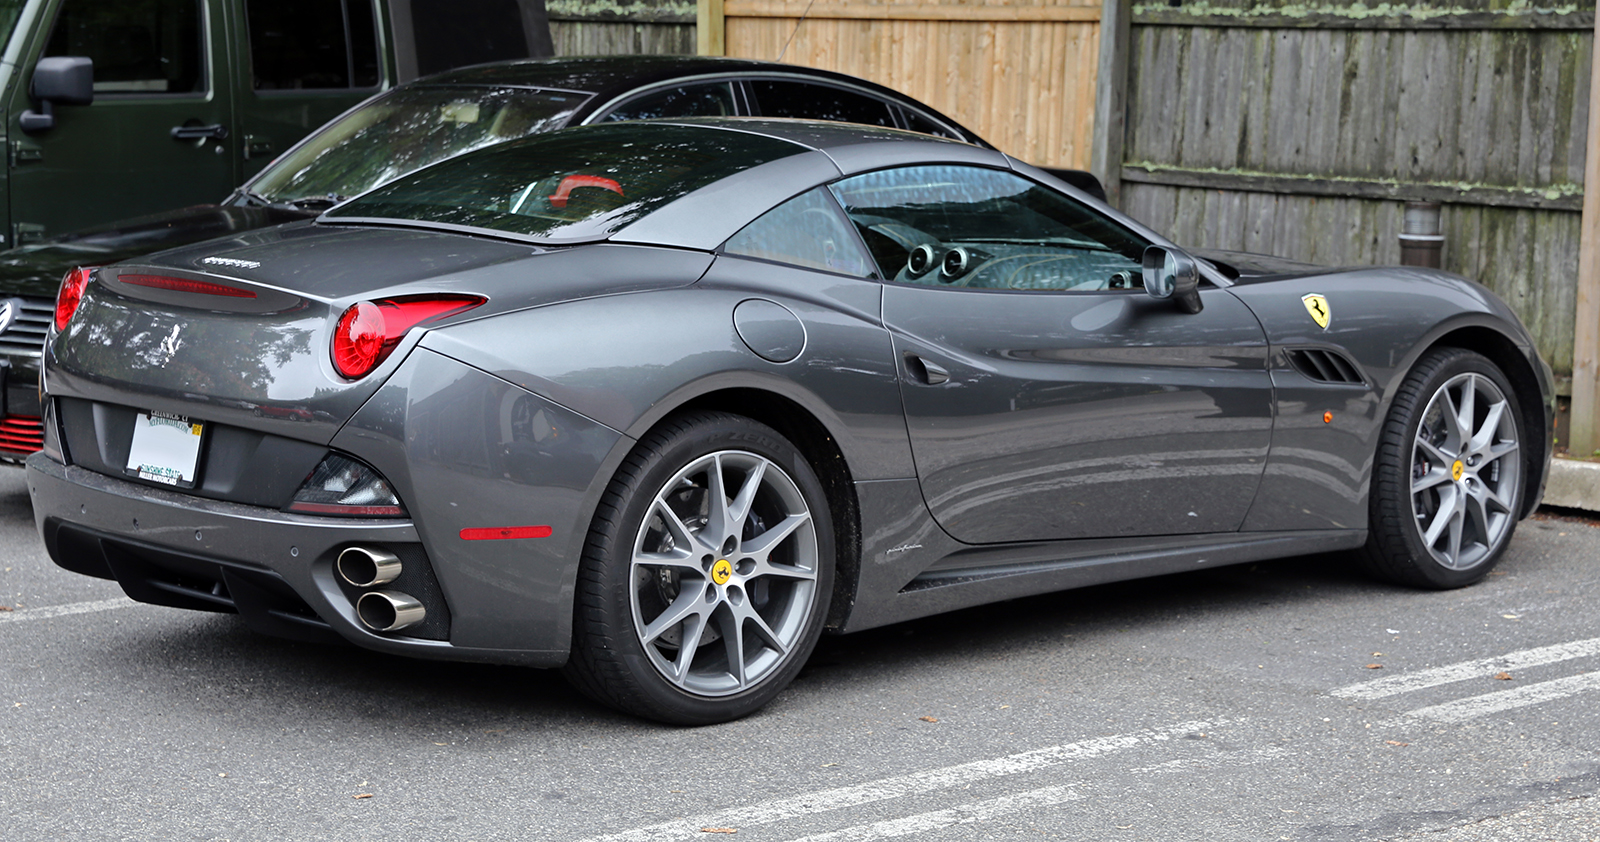 2014_ferrari_california_grey_rear_right.jpg